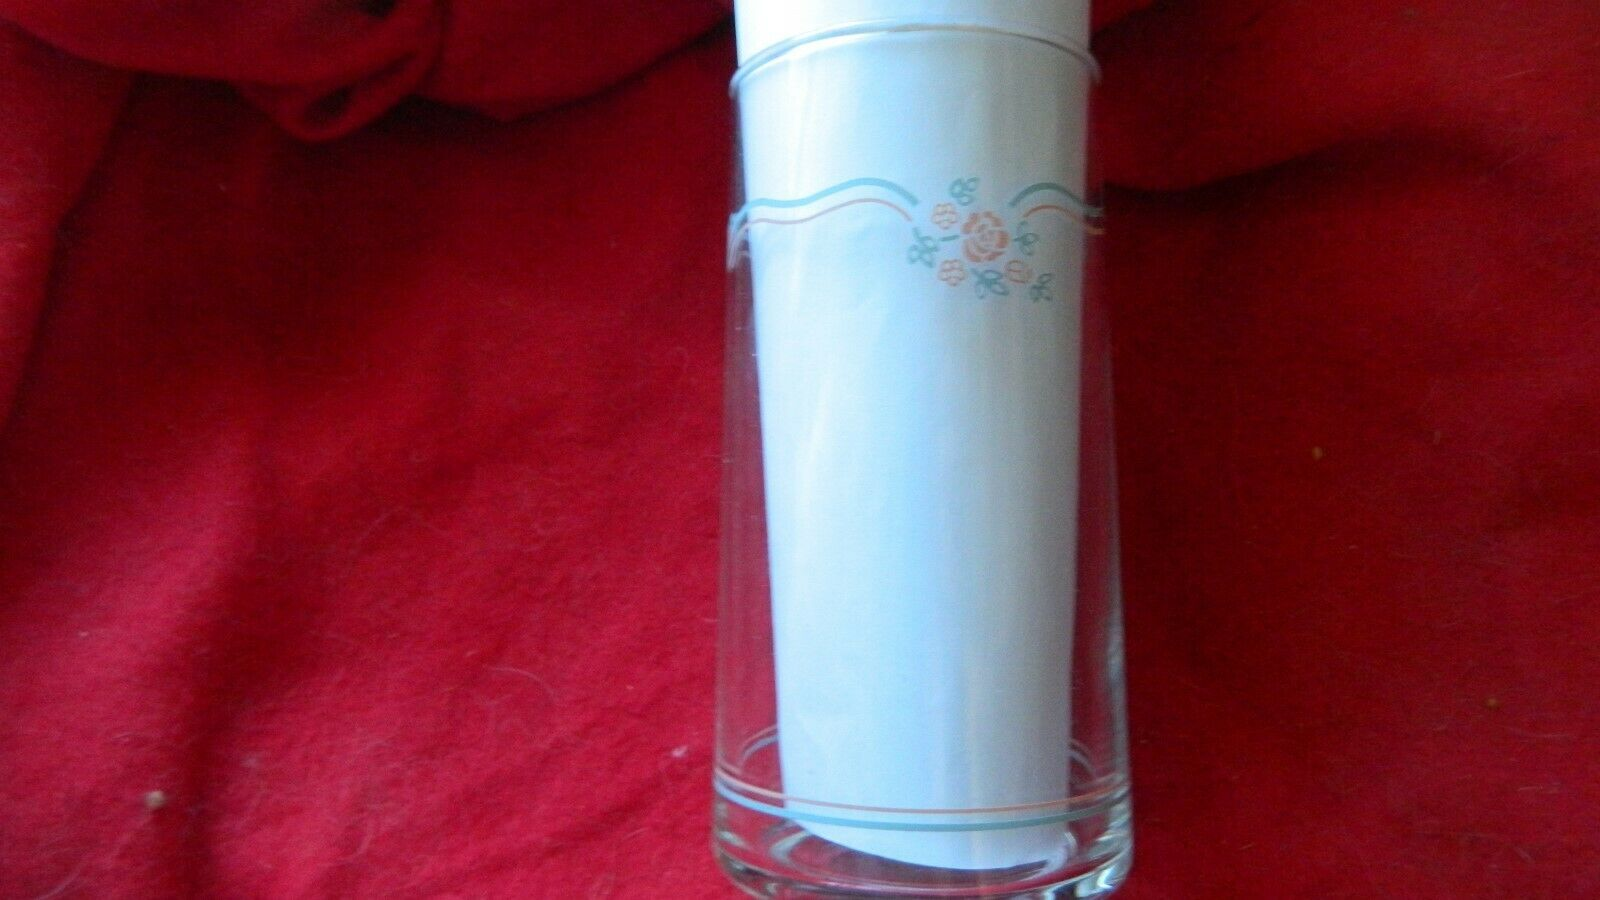 Primary image for CORELLE ENGLISH BREAKFAST 16 OZ ICE TEA TUMBLER DRINKING GLASS x1 FREE USA SHIP